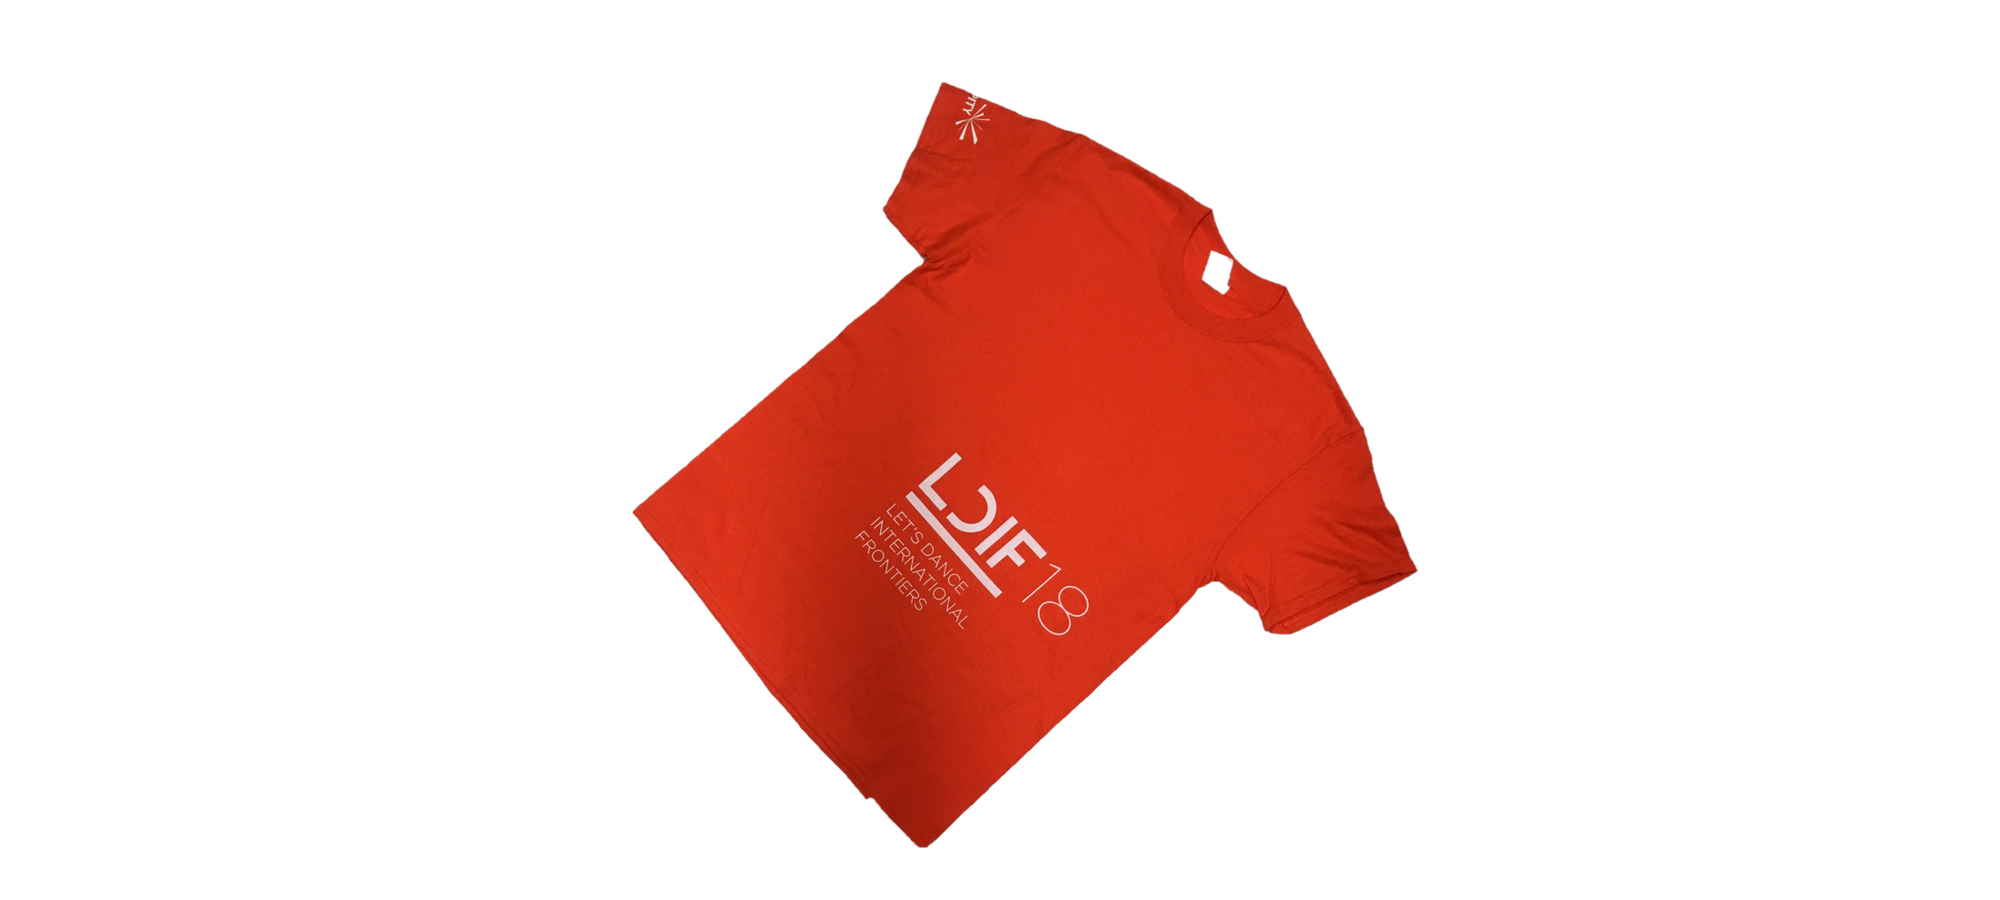 LDIF18 T-SHIRT — Page Banner